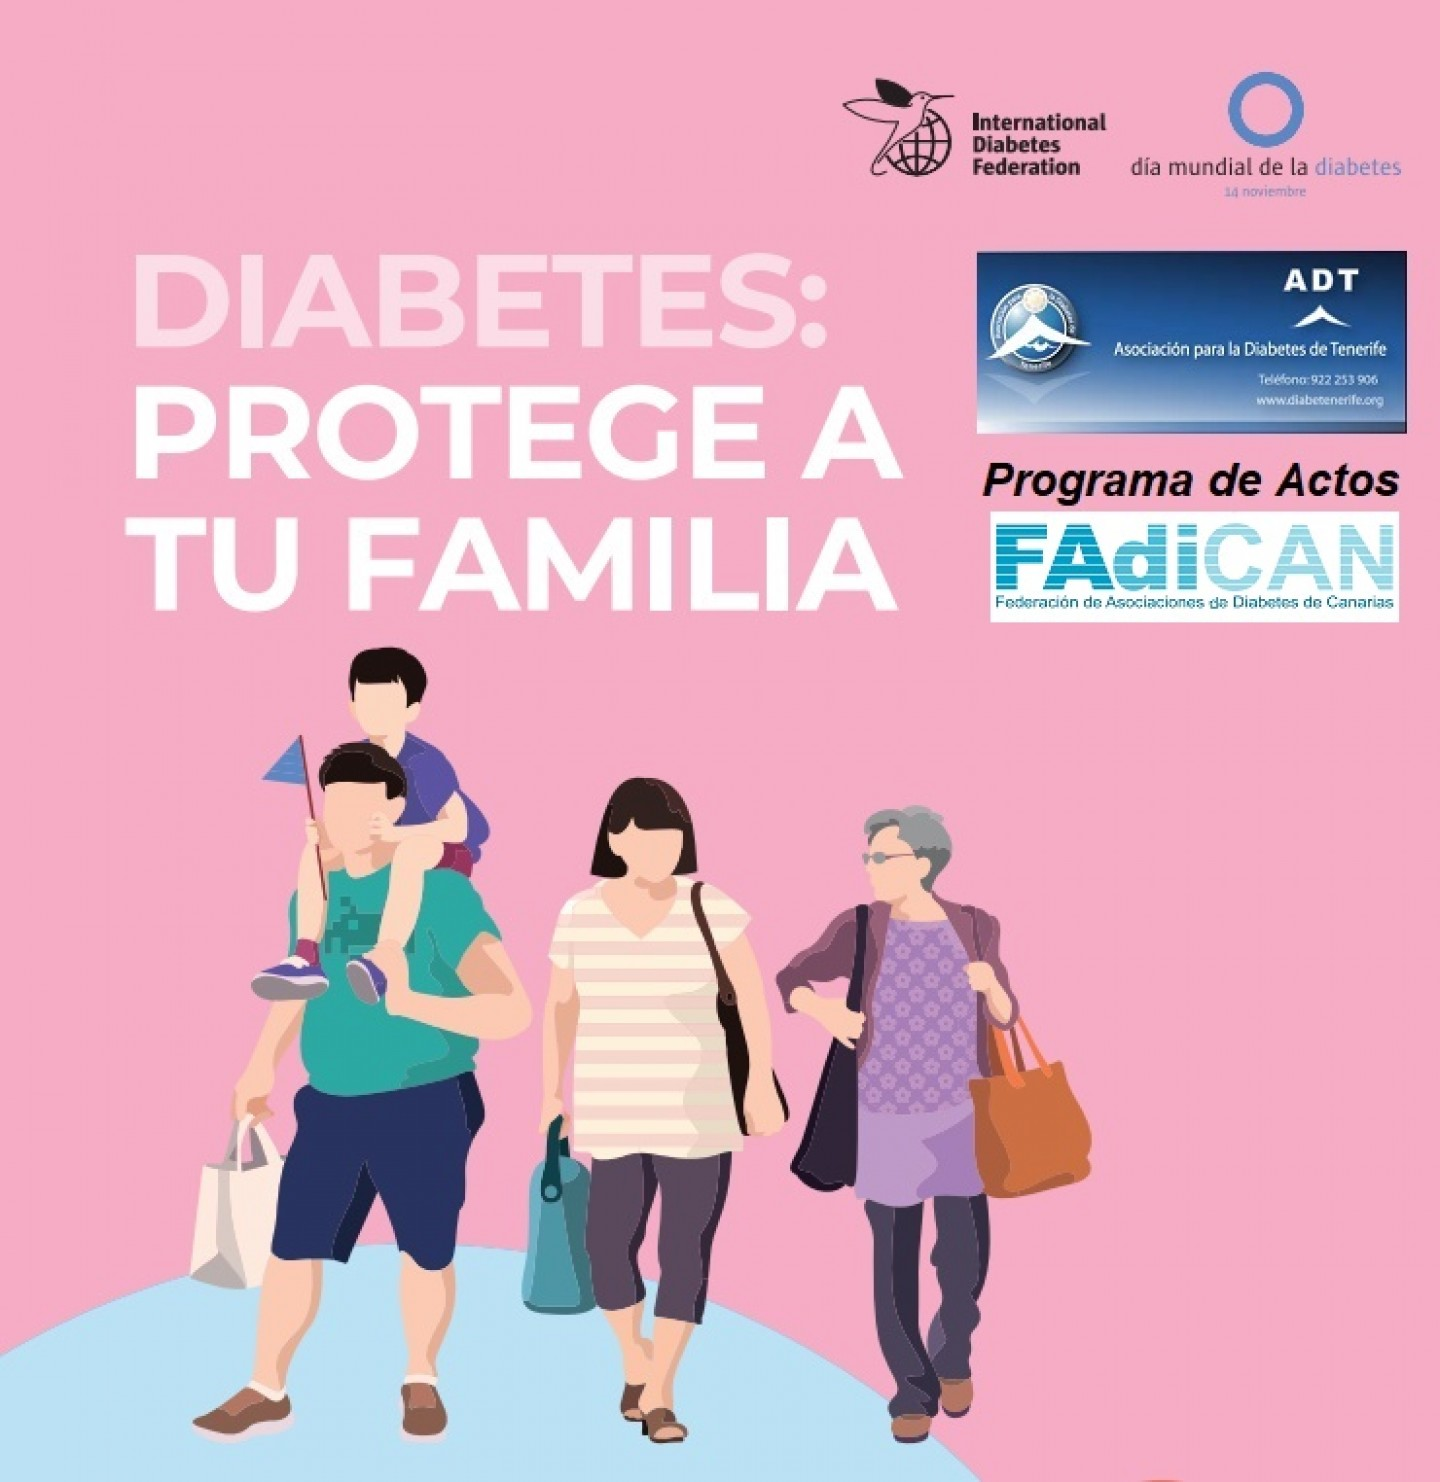 folleto de cambio de vida con diabetes